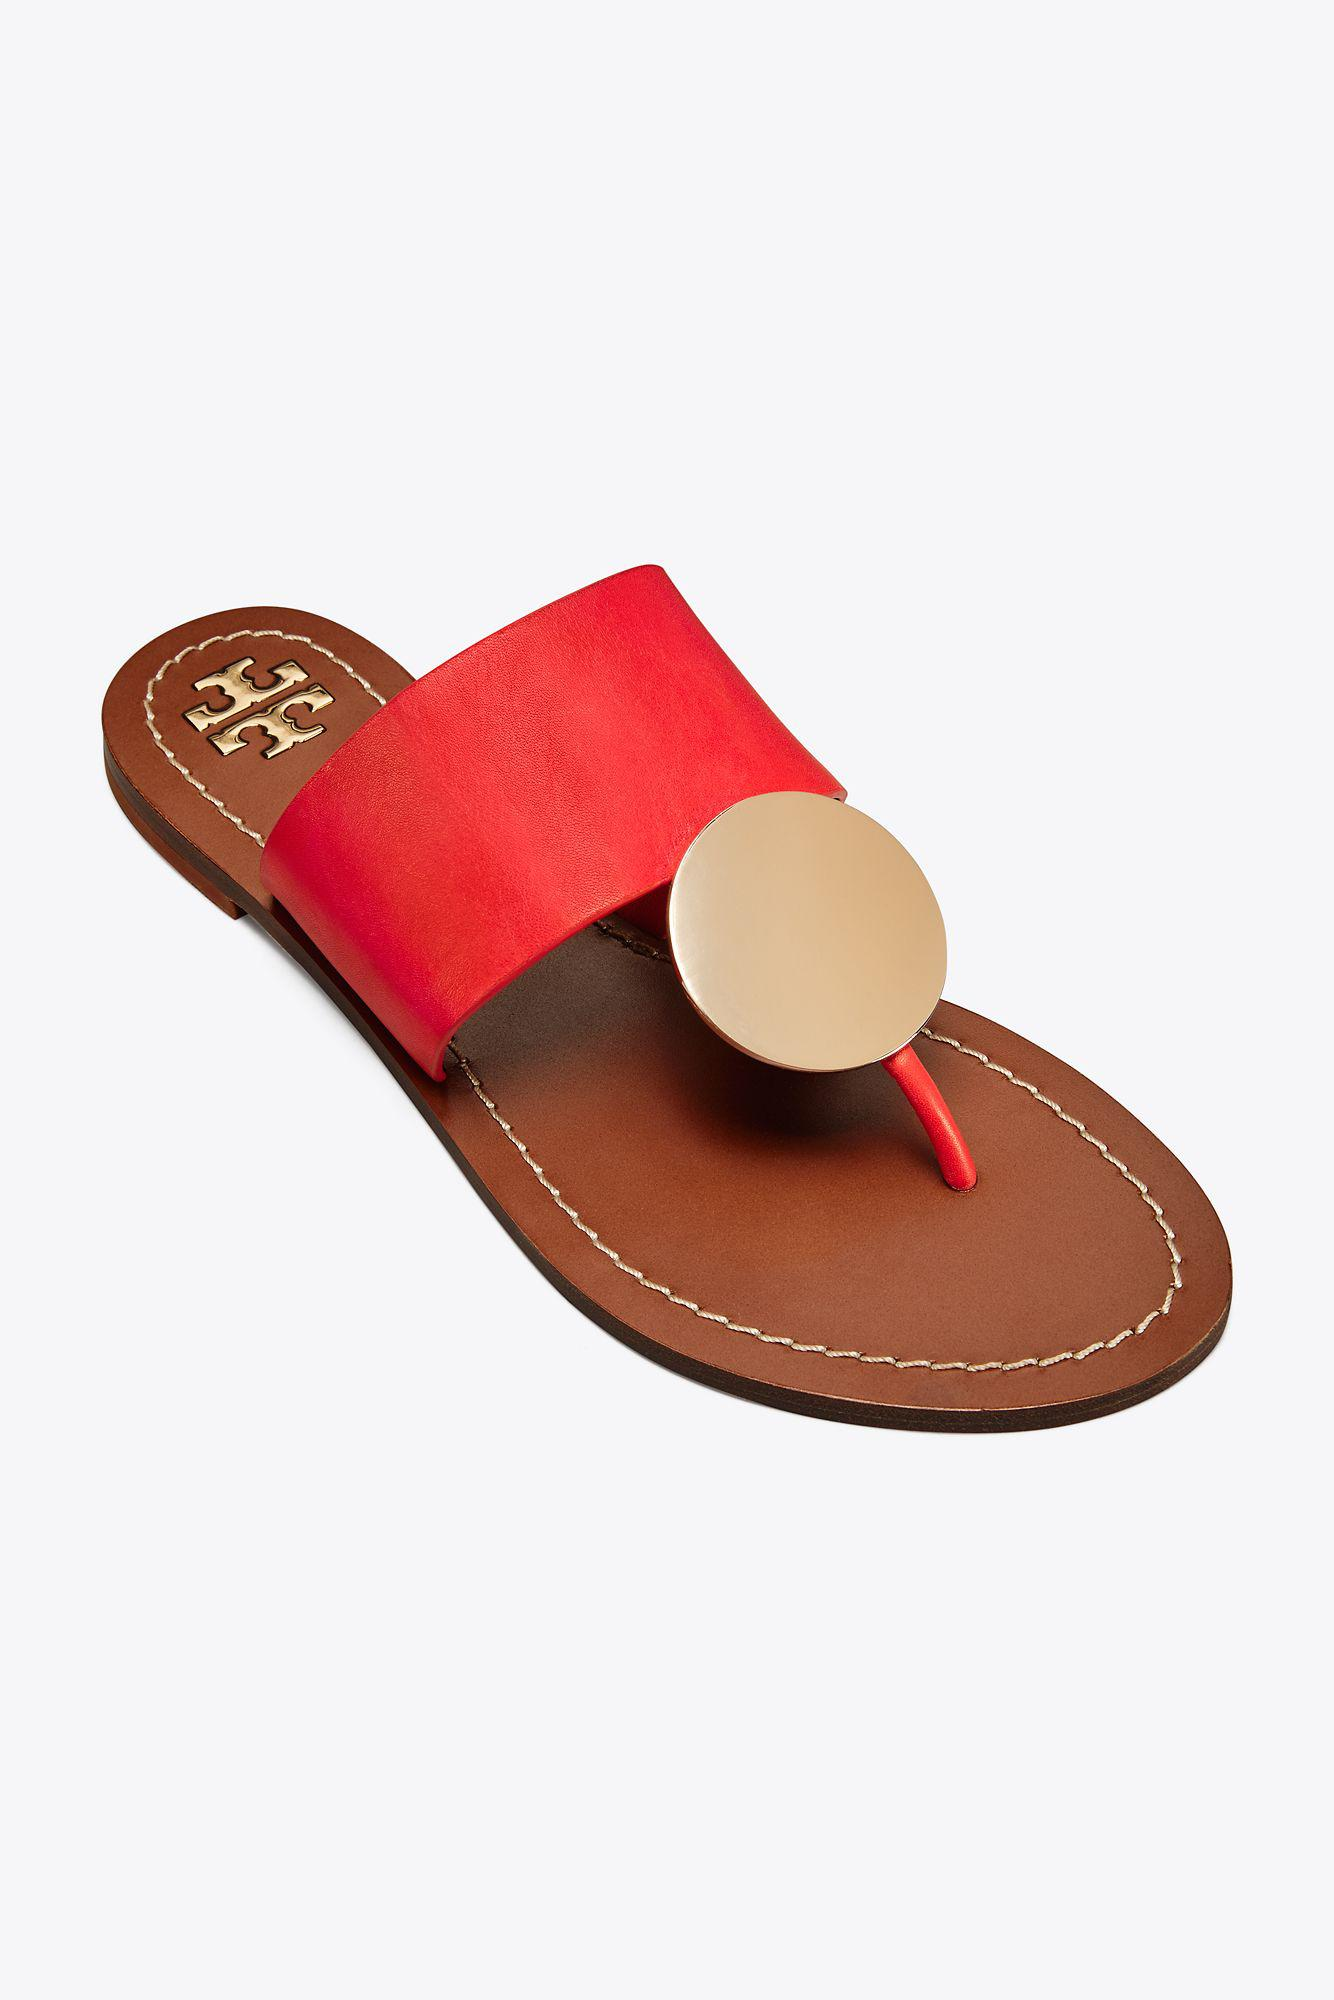 17d0486a8f46d6 Tory Burch Patos Disk Sandal in Red - Lyst